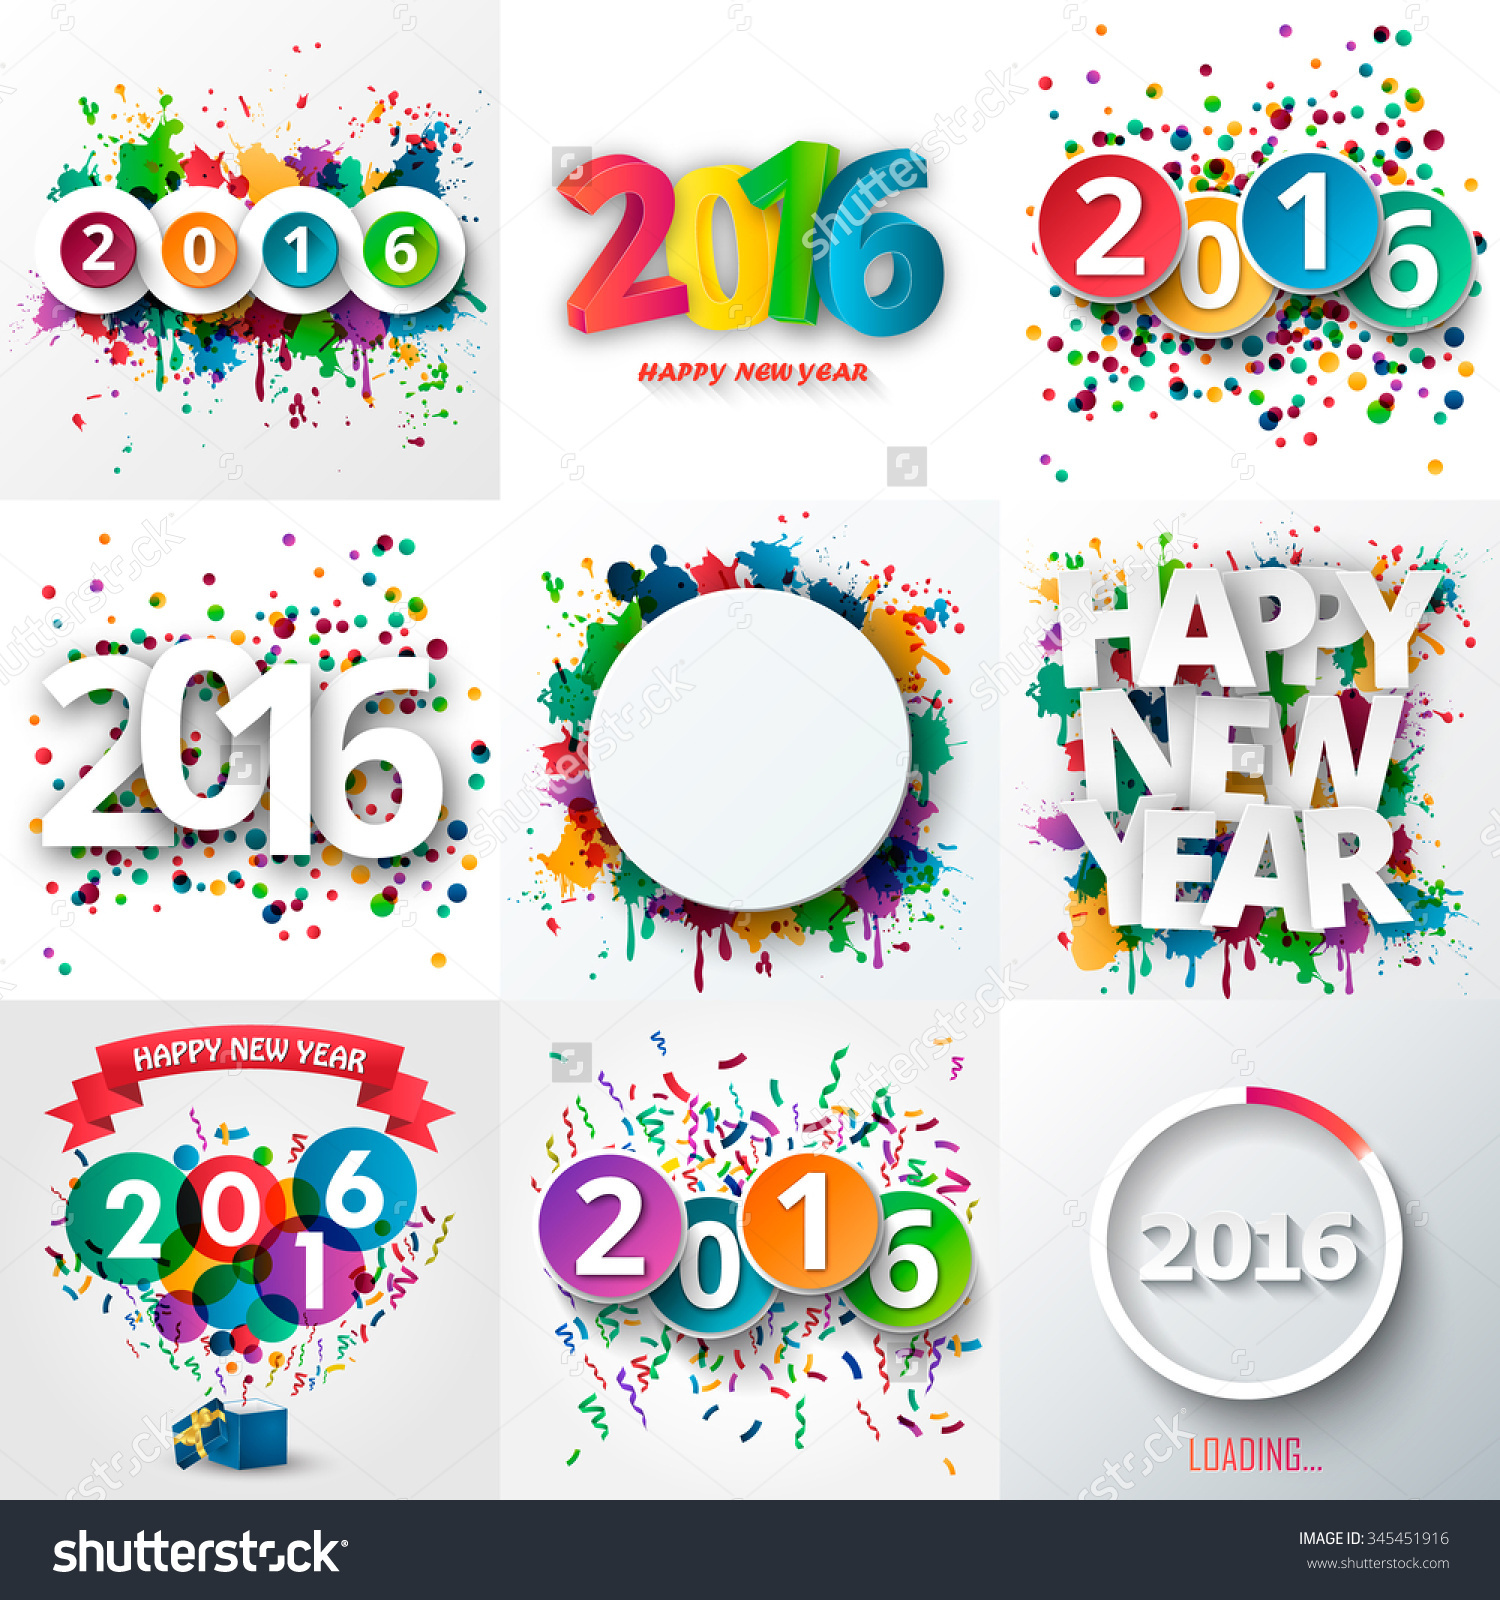 Big Set Of Happy New Year Celebration 2016 With Colorful Spray.